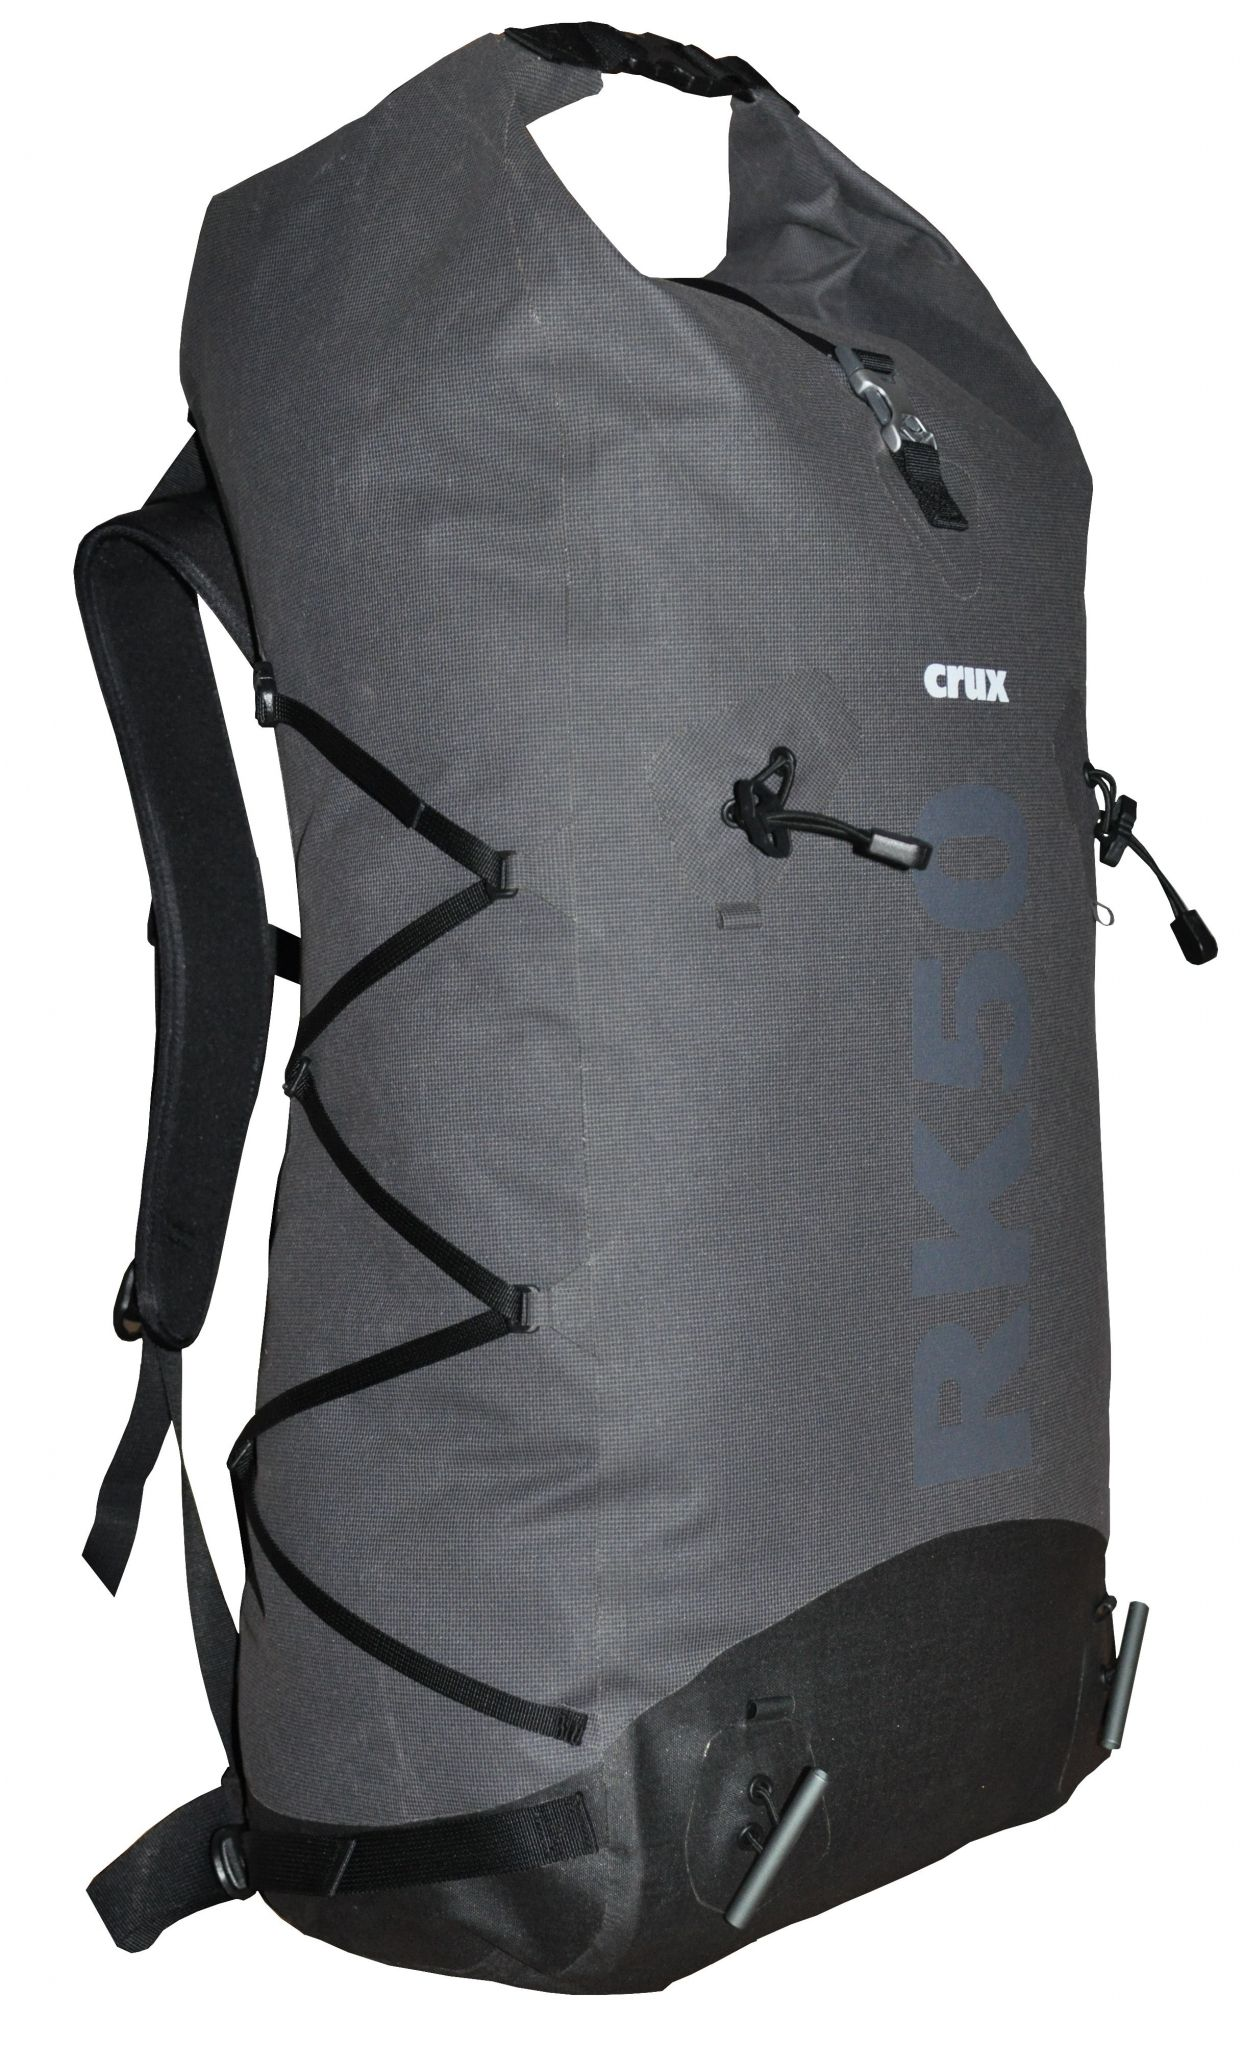 RK50 | Crux UK | Clothing | Backpacks | Tents | Sleeping Bags  sc 1 st  Pinterest : back pack tents - memphite.com